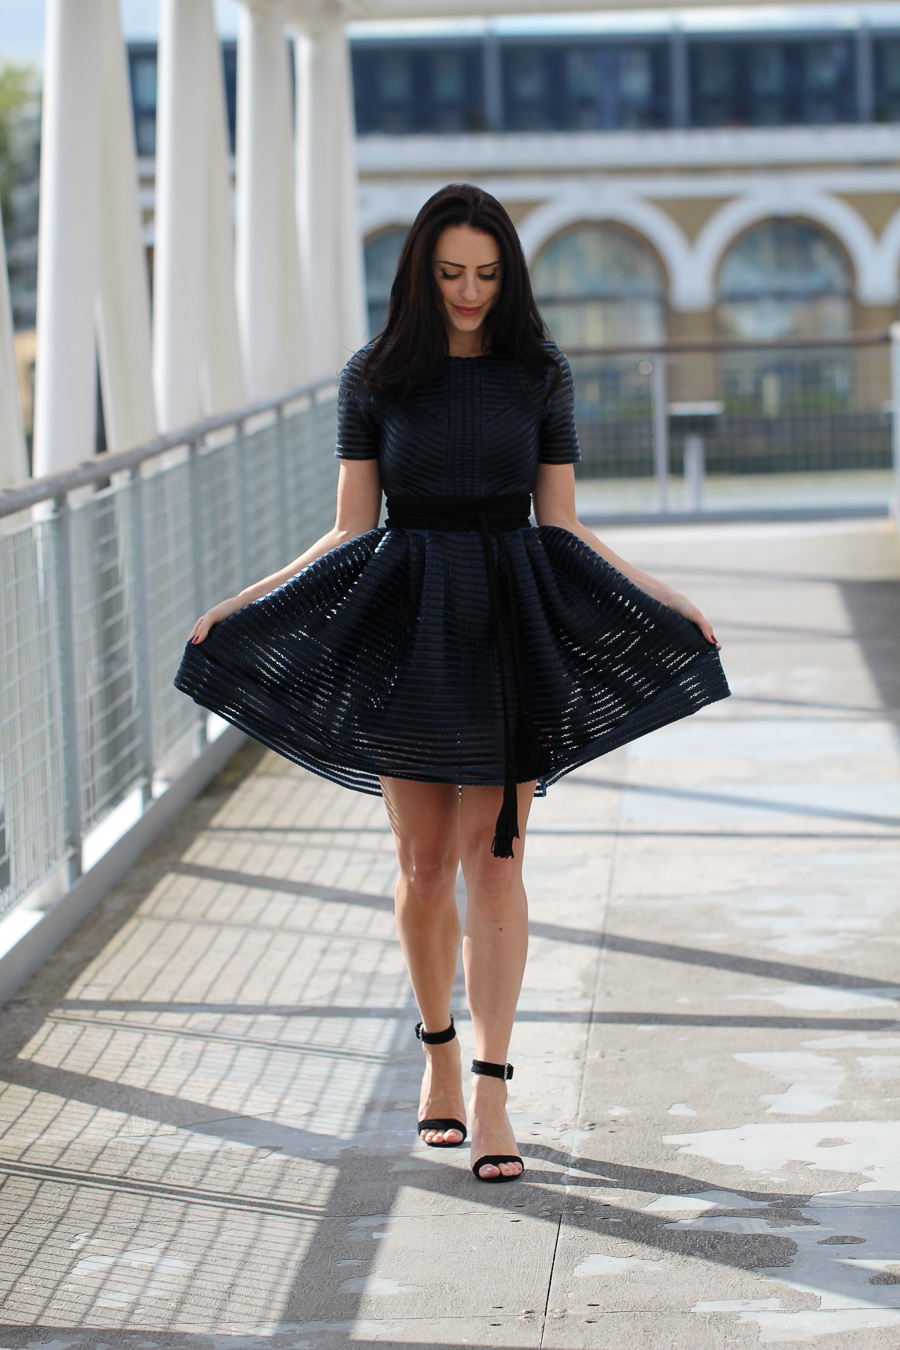 Clutch and carry on - sabrina chakici - london fashion blogger - london fitness blogger_-46